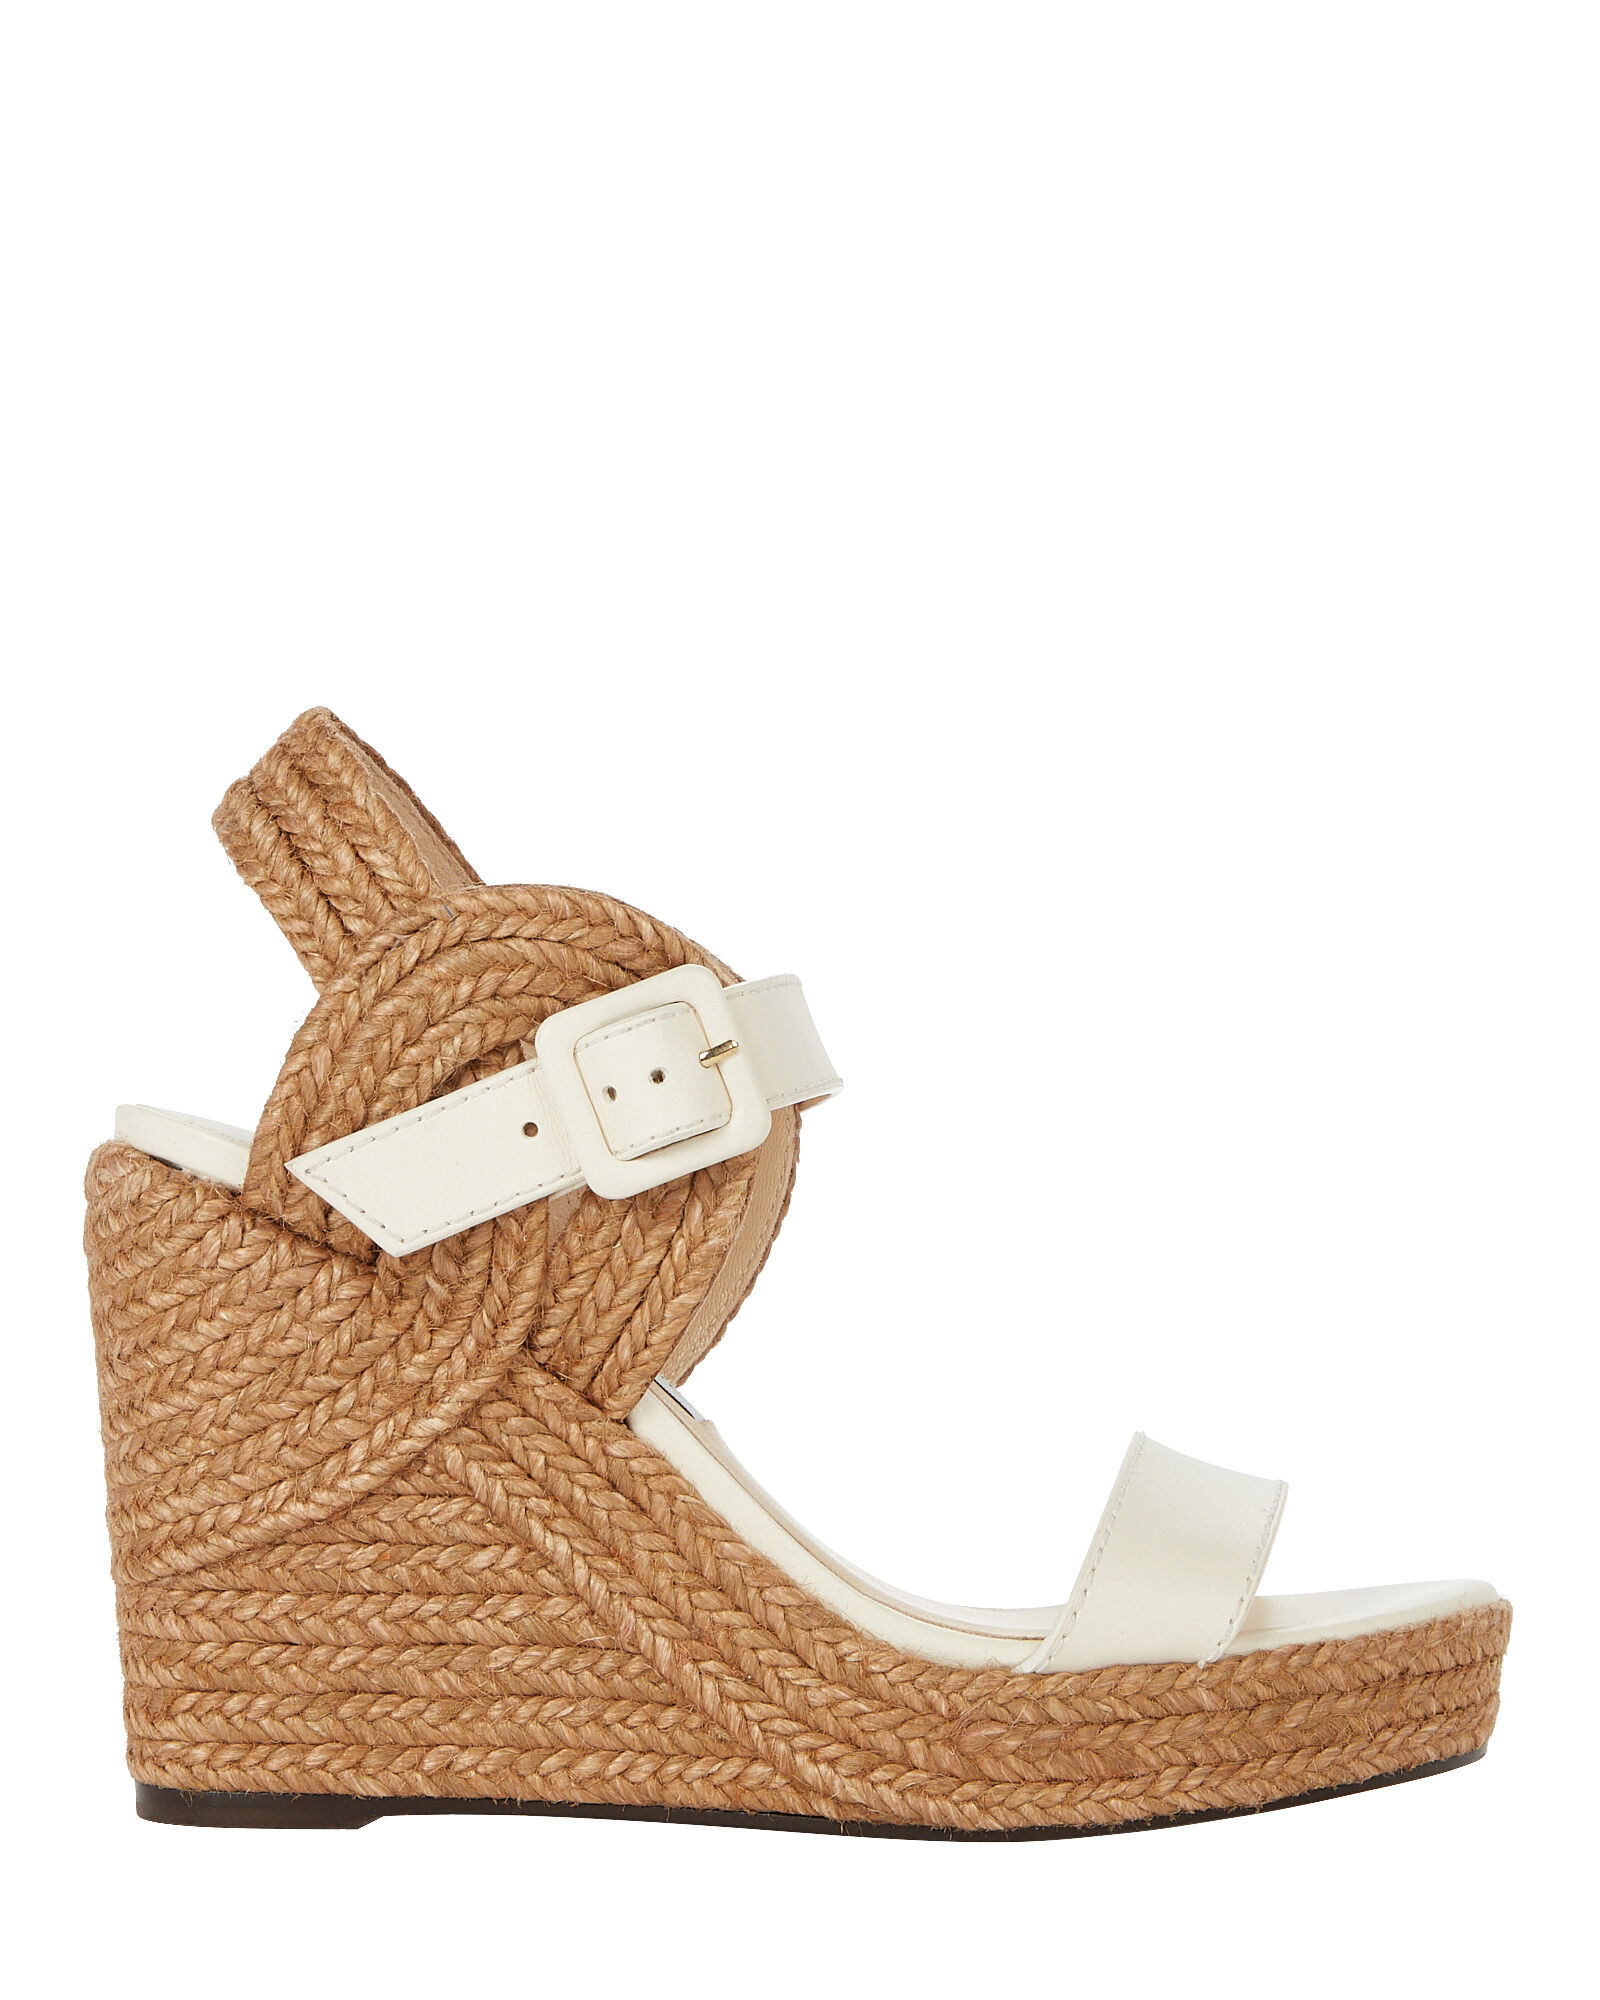 Delphi 100 Leather Espadrille Wedges, WHITE, hi-res